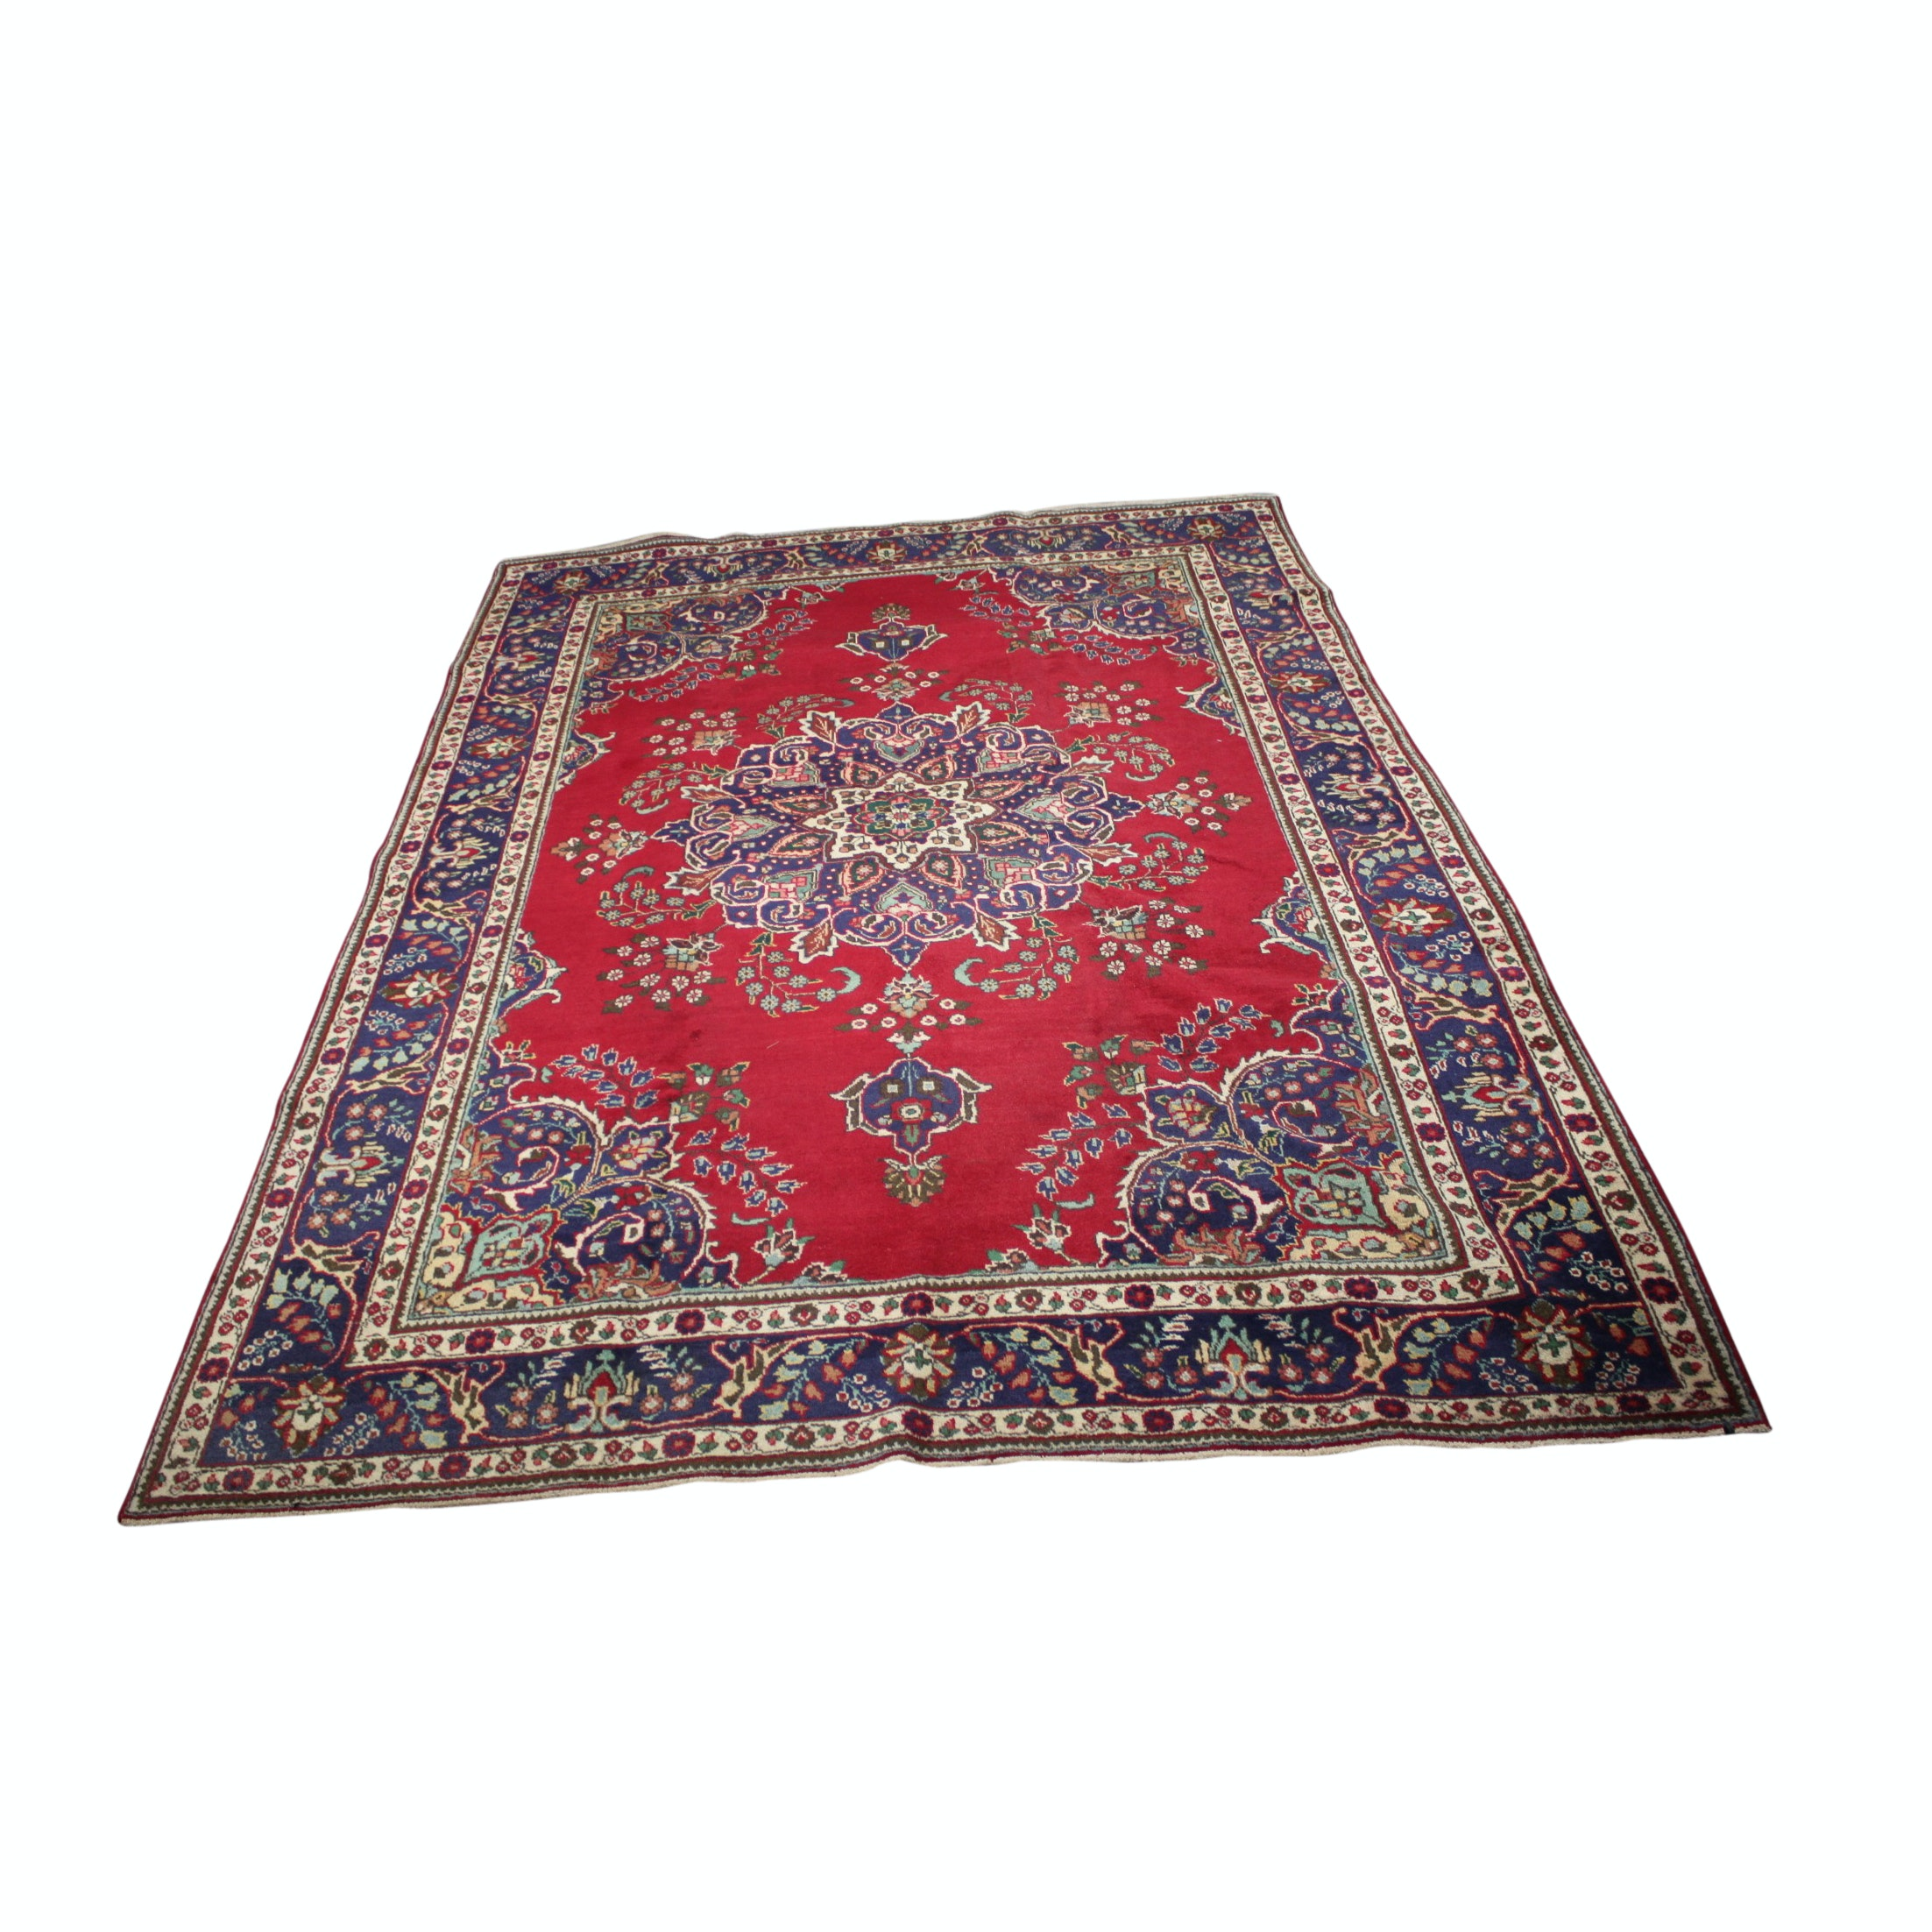 8' x 12' Hand-Knotted Persian Qom Wool Area Rug